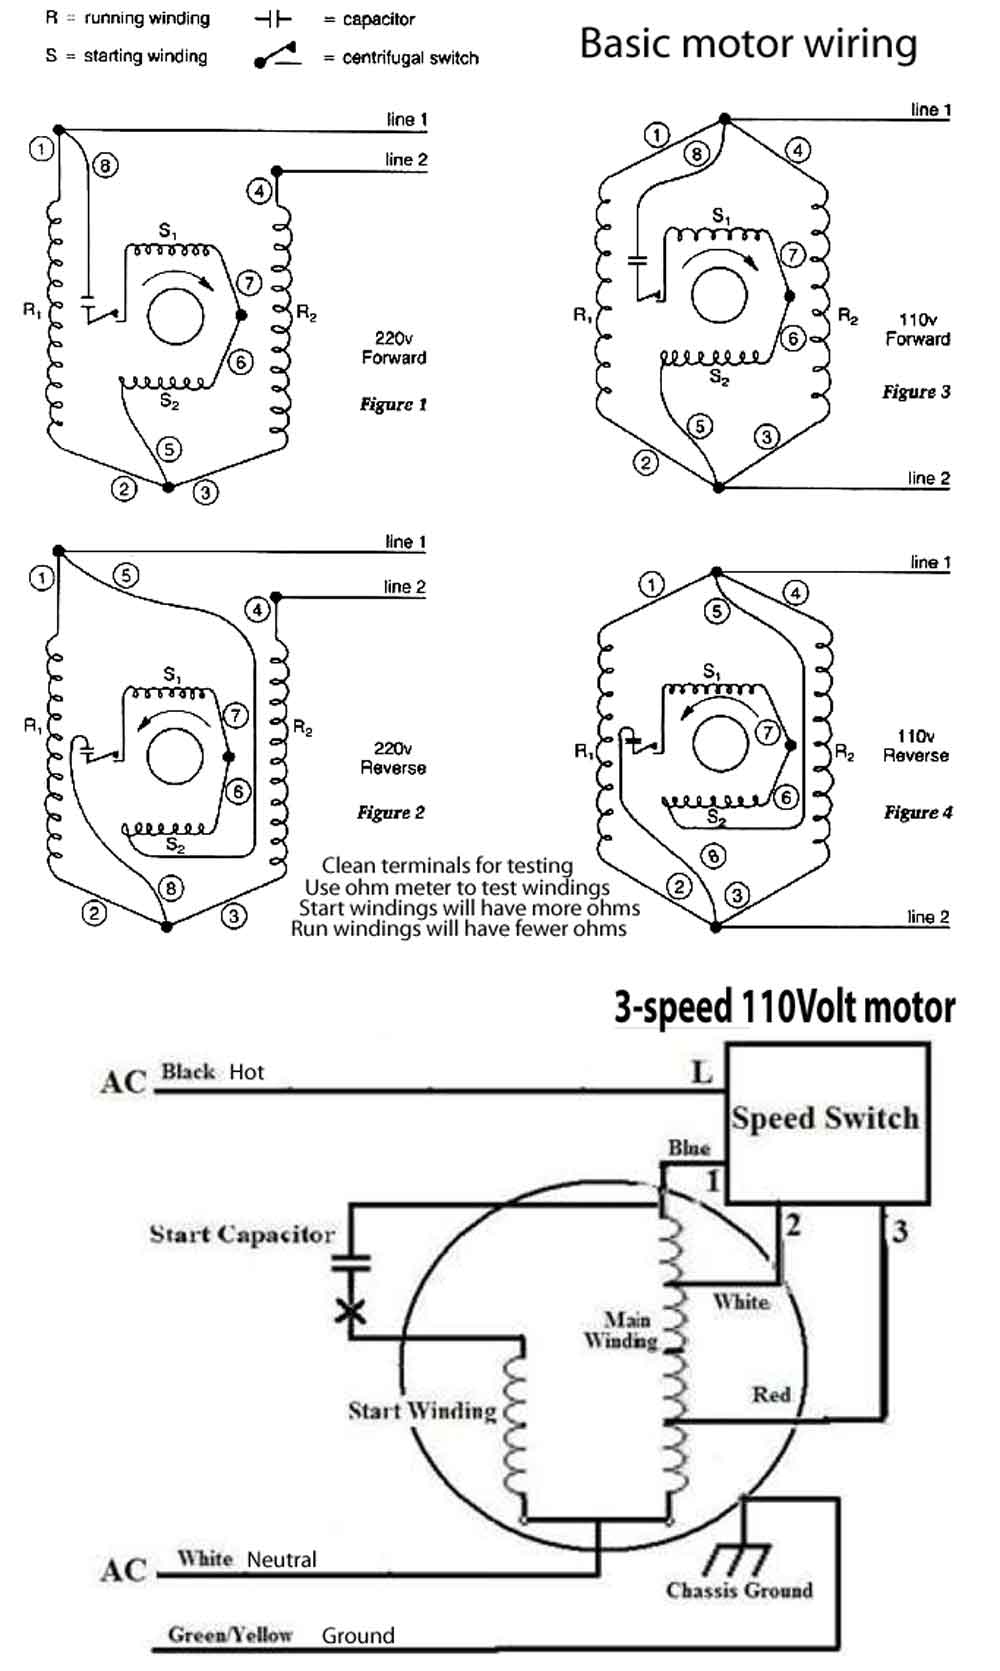 Motor wiring 500 color code for residential wire how to match wire size and 110 Power Cord Diagram at fashall.co